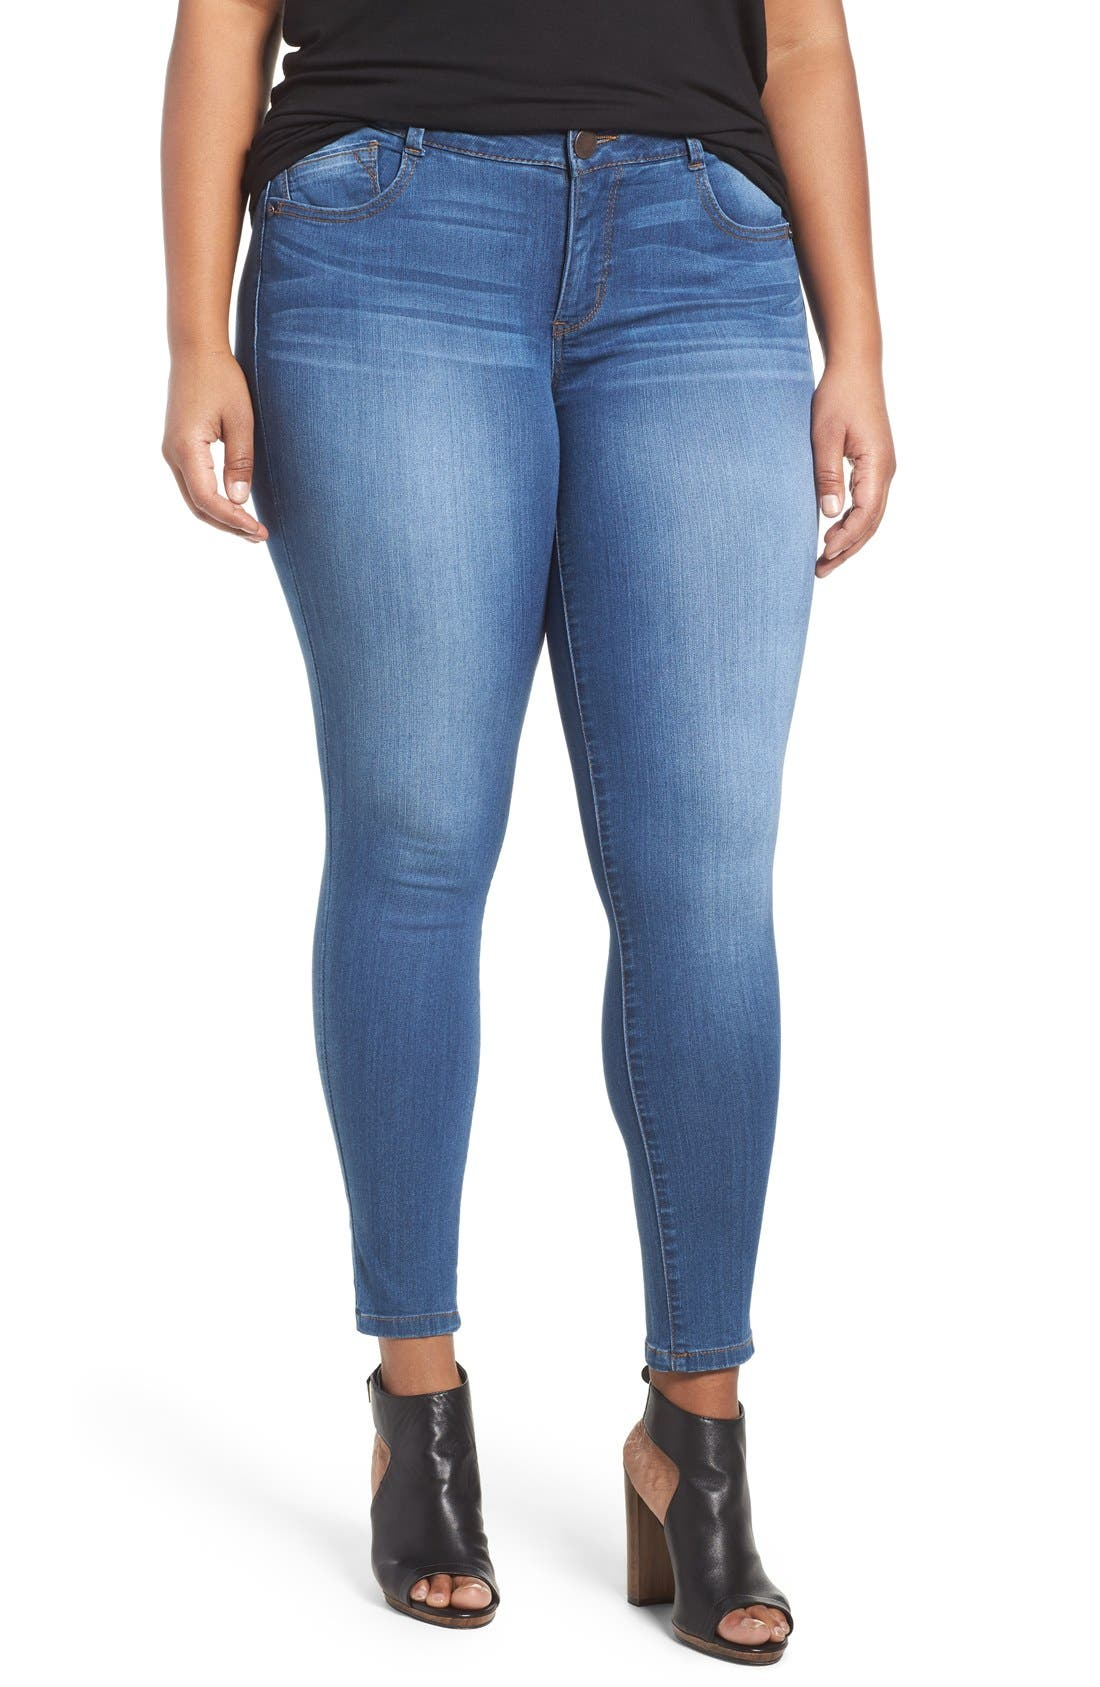 Ab-solution Stretch Skinny Jeans,                             Main thumbnail 1, color,                             BLUE